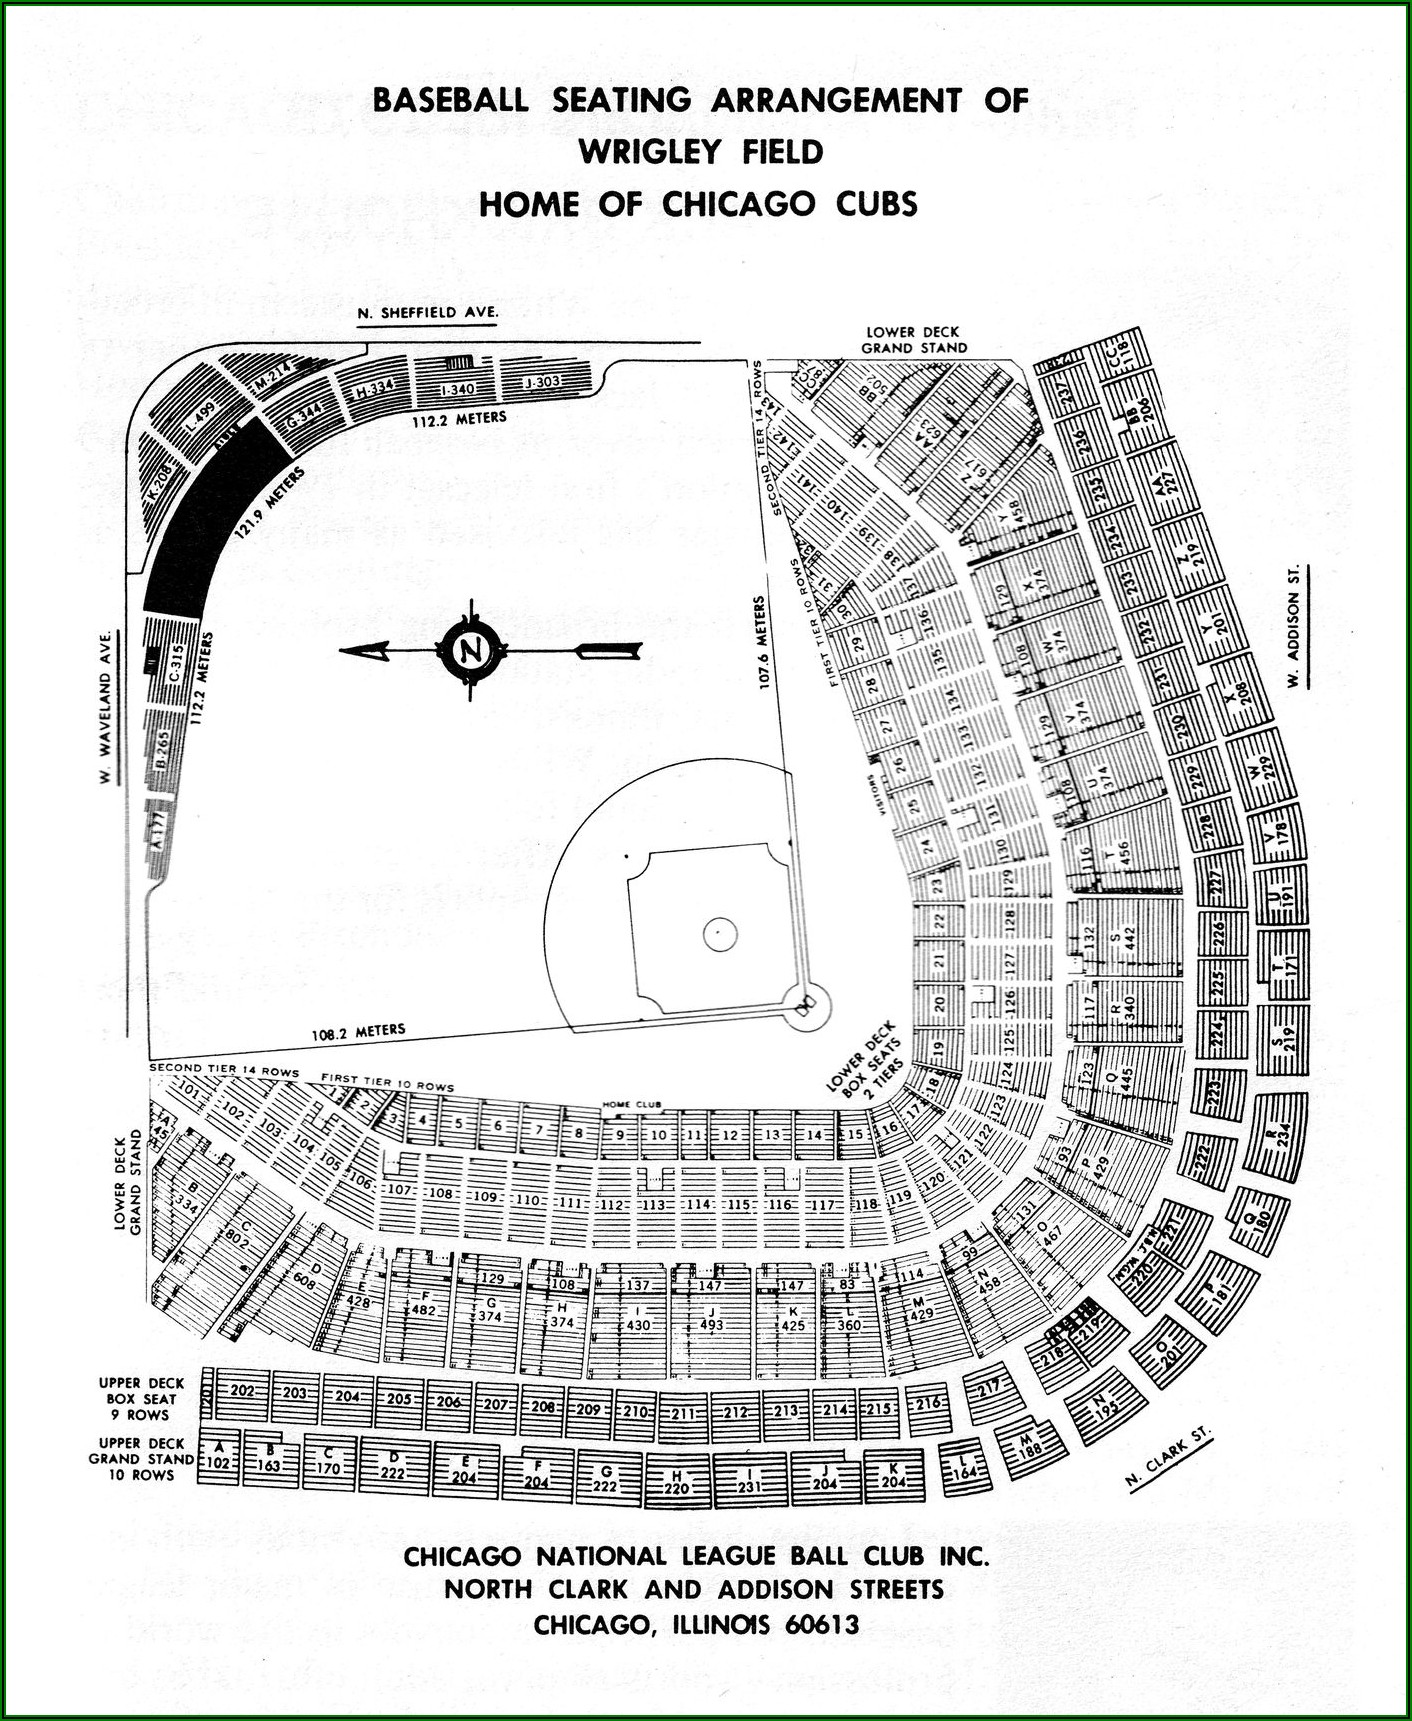 Wrigley Field Seating Chart With Seat Numbers 2019